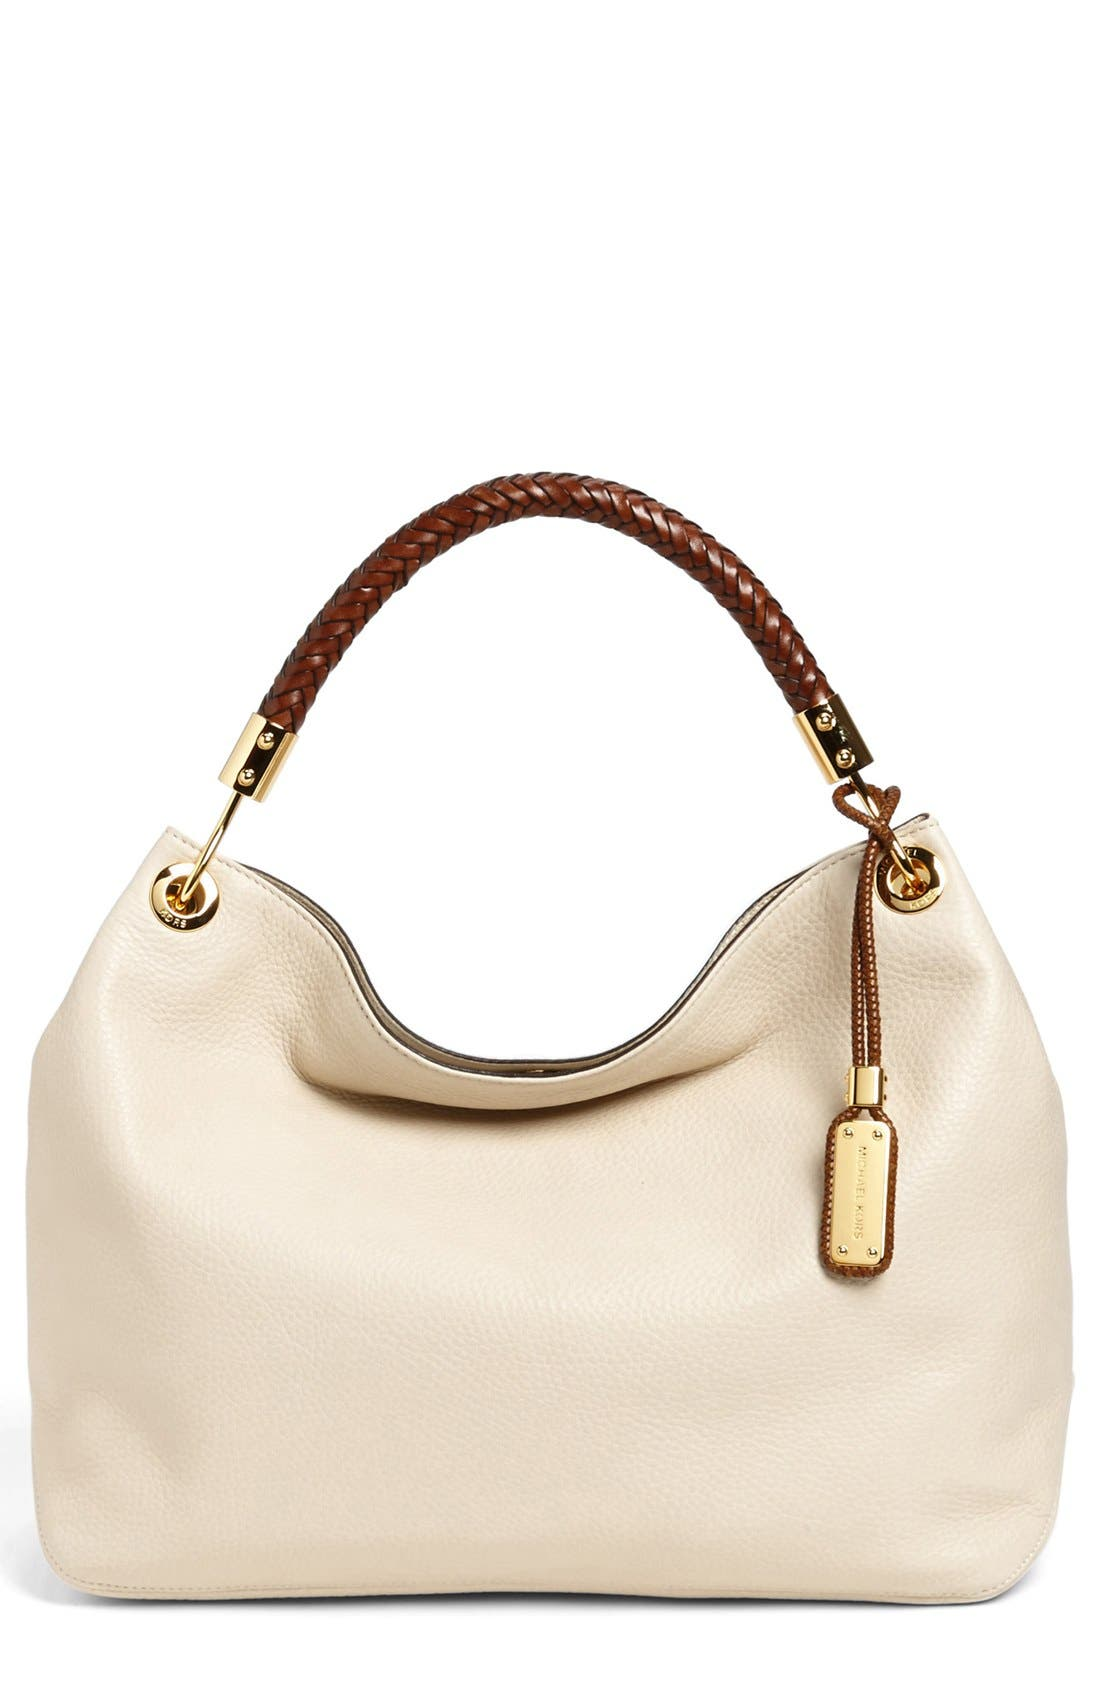 Main Image - Michael Kors 'Large Skorpios' Leather Shoulder Bag